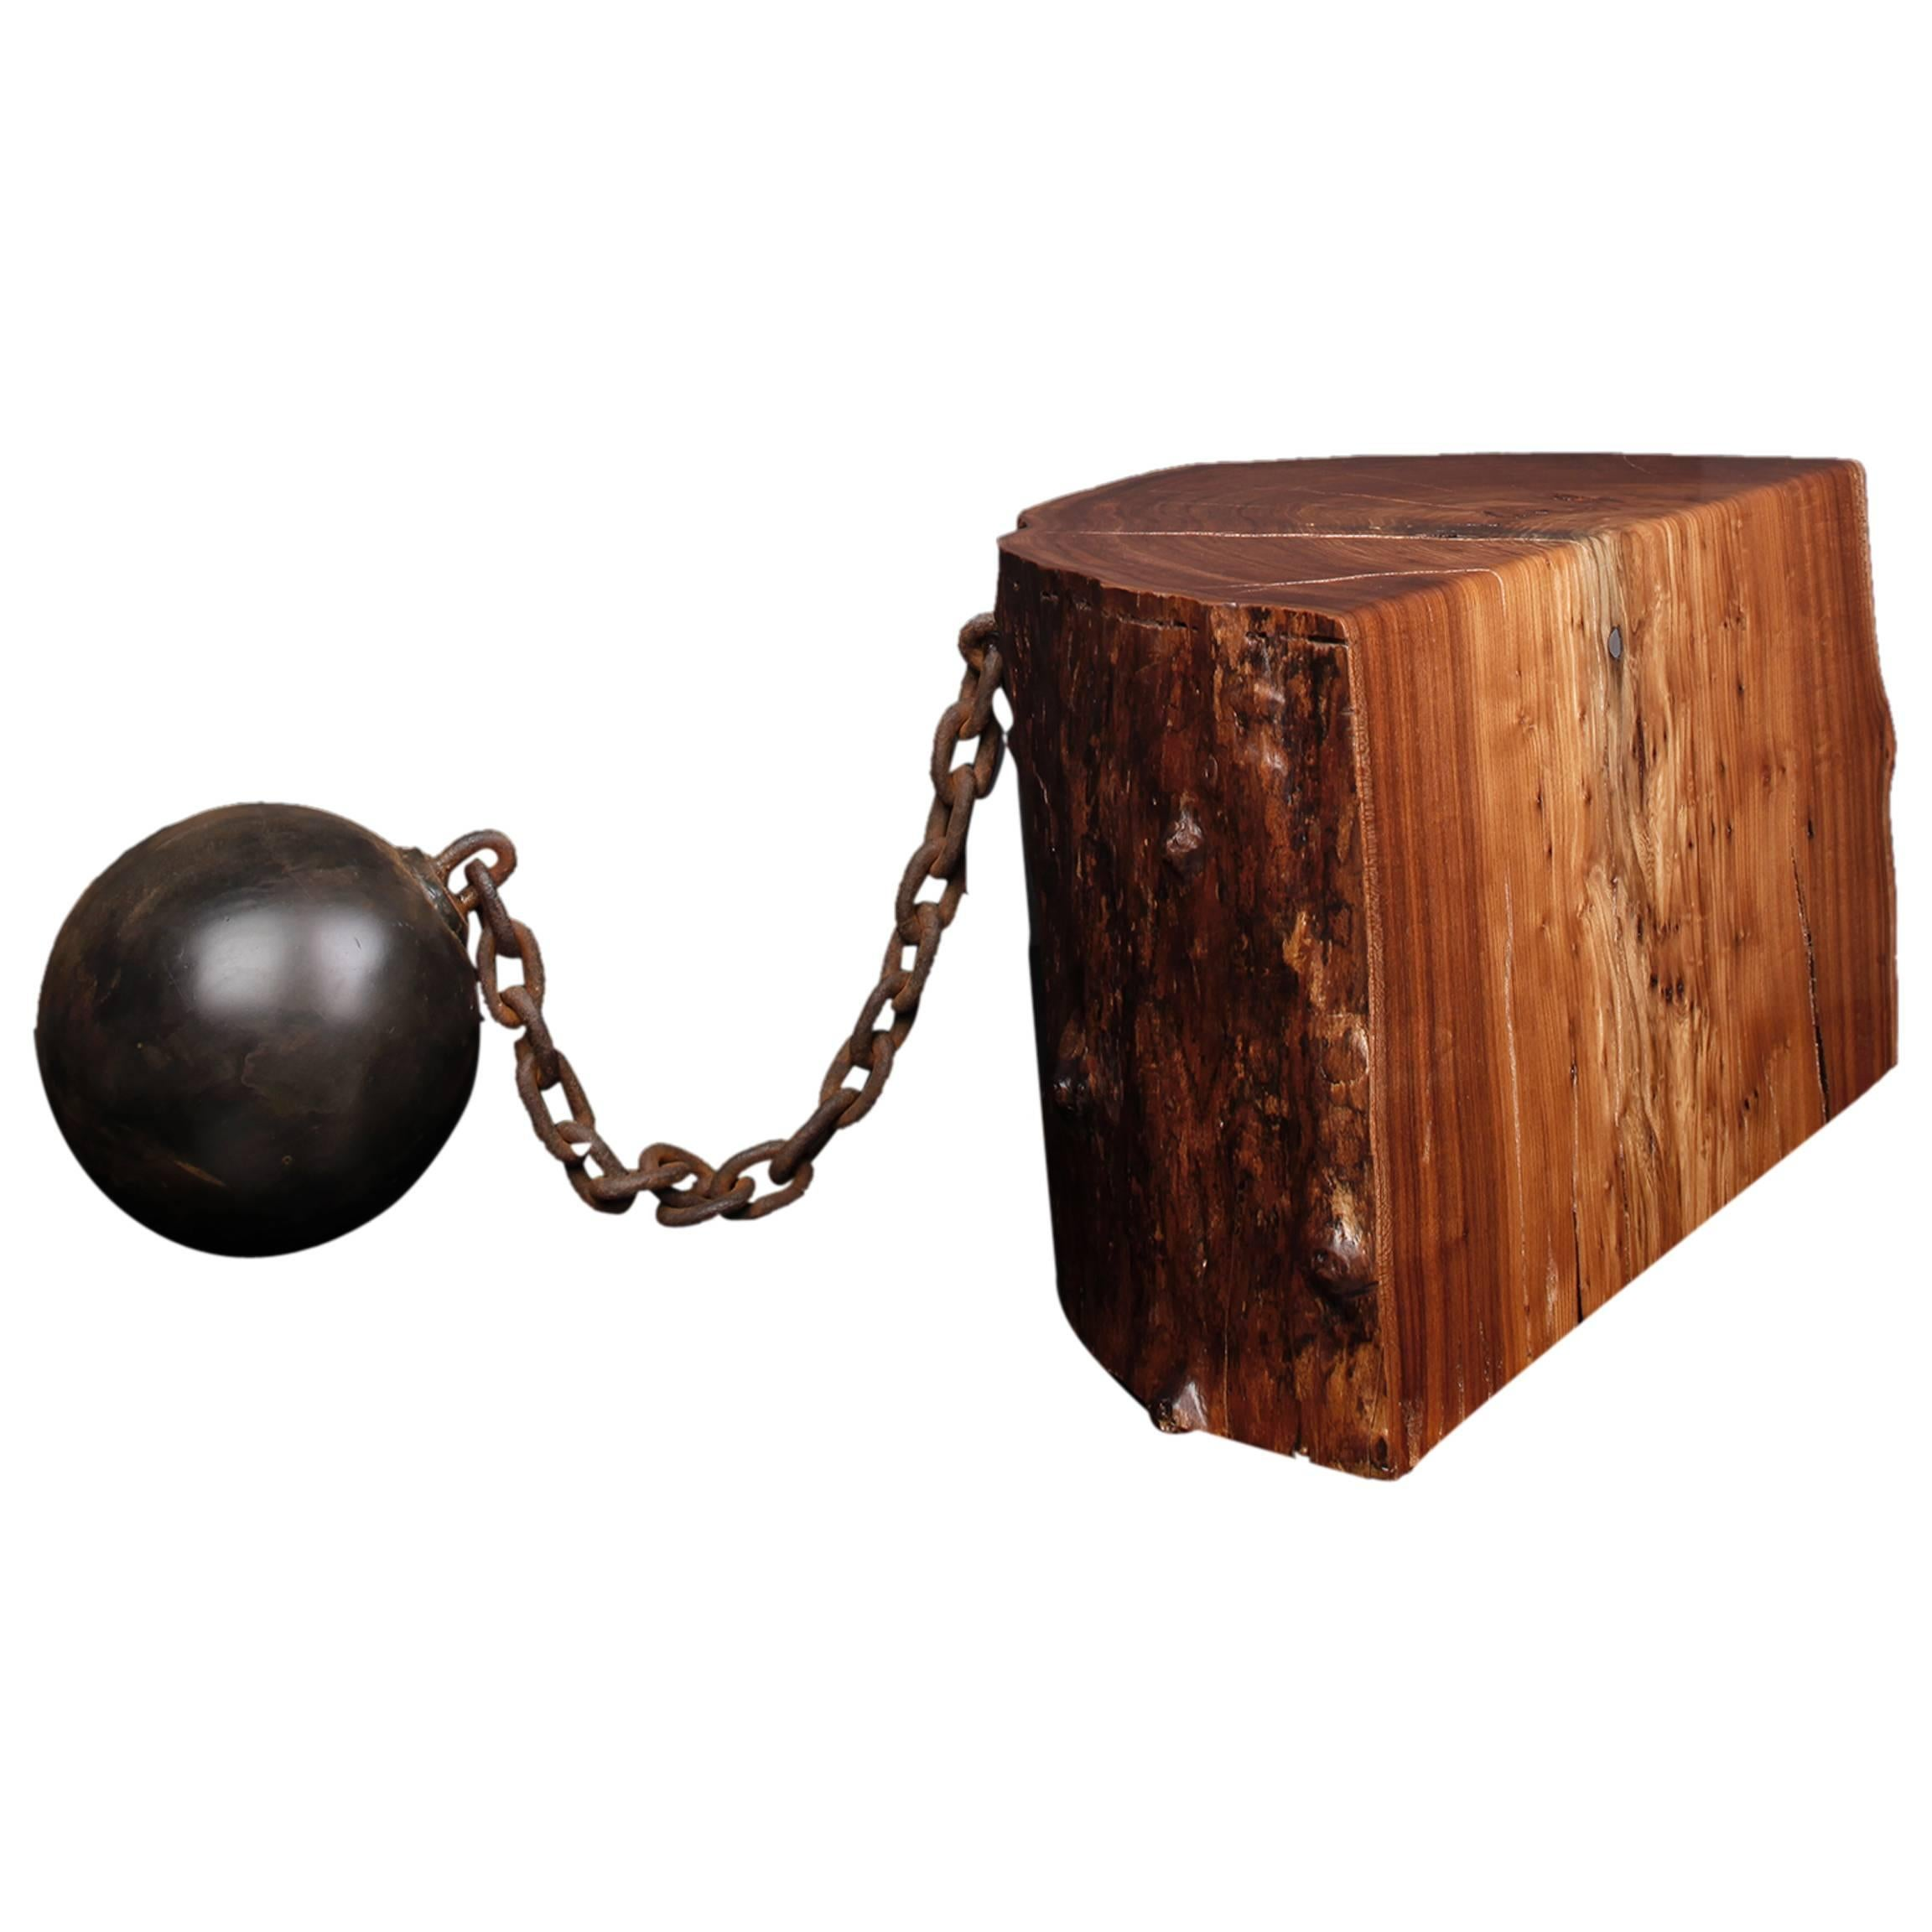 """""""Ball and Chain"""" Table in American Elm and Steel by Studio Roeper"""